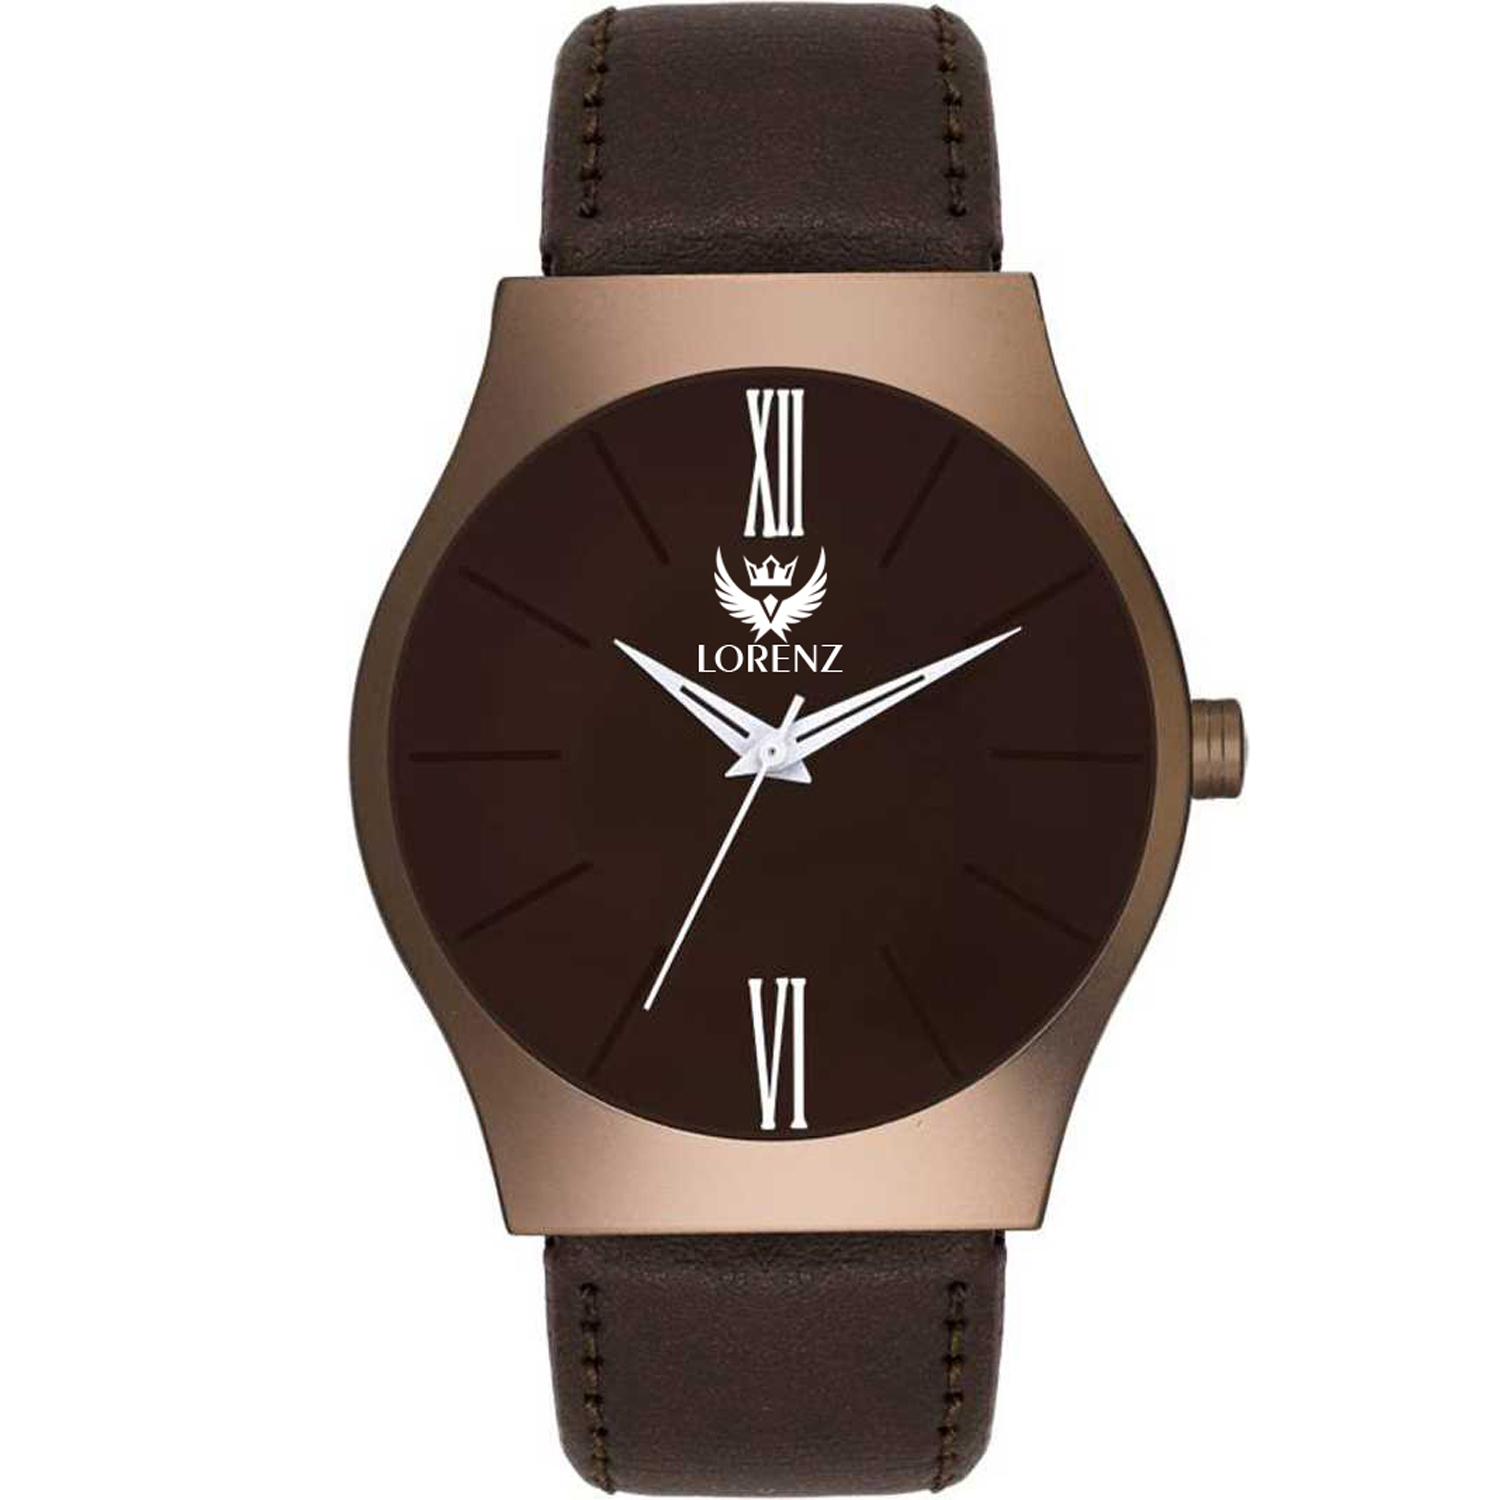 Lorenz Round Brown Dial Leather Strap Analog Watch For Men